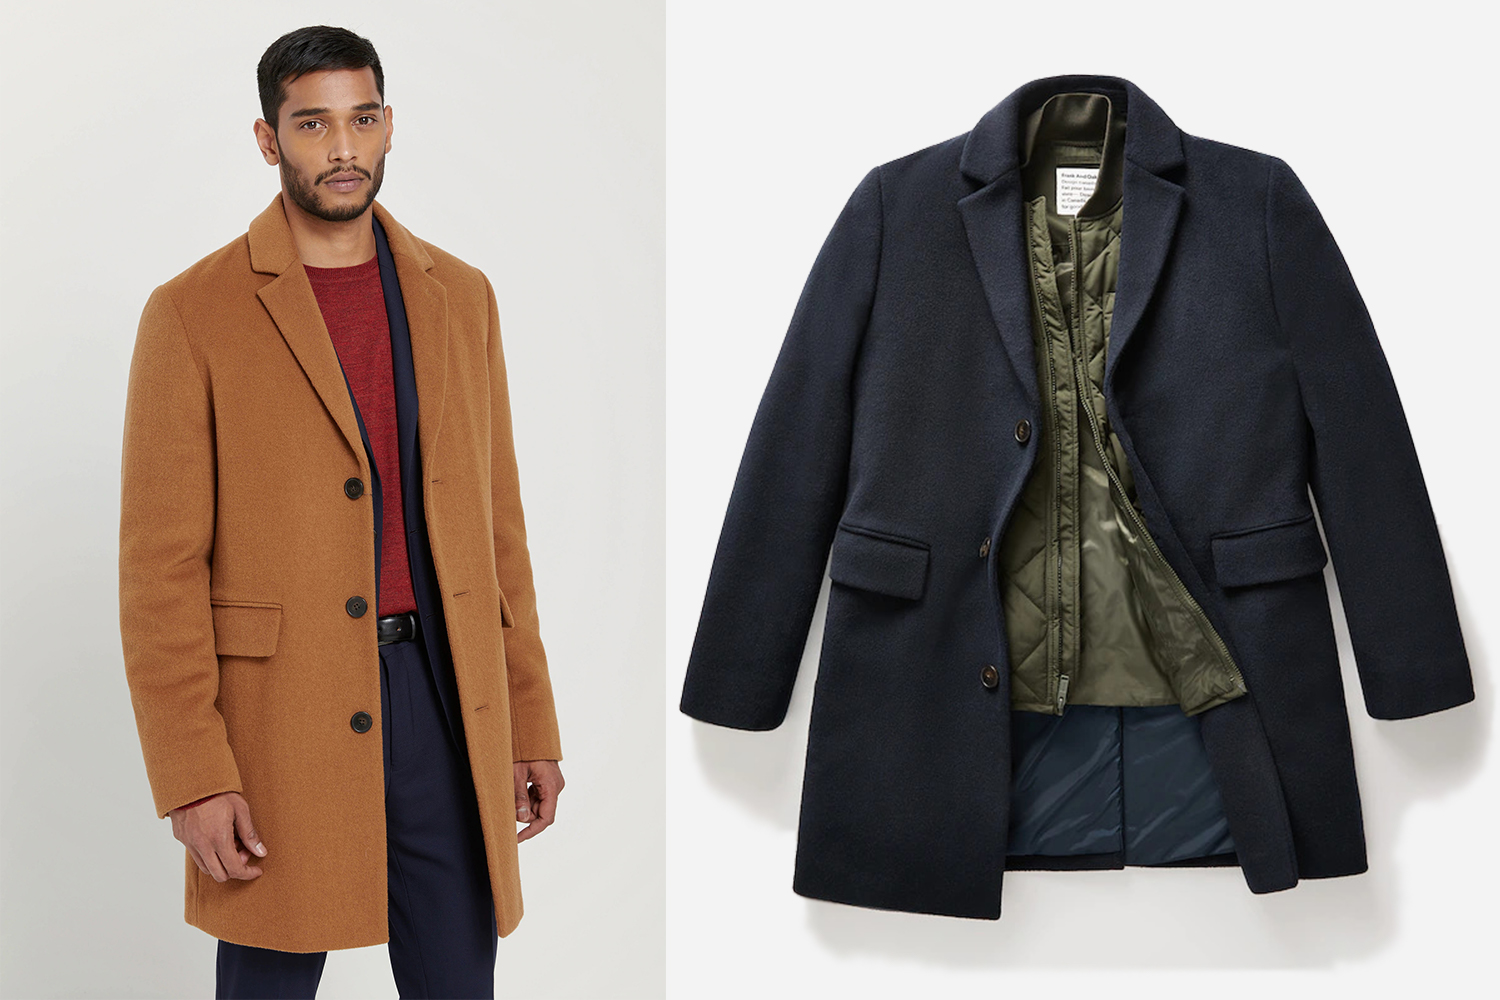 Frank And Oak Smart-Layering Menswear Fall Winter 2019 Collection